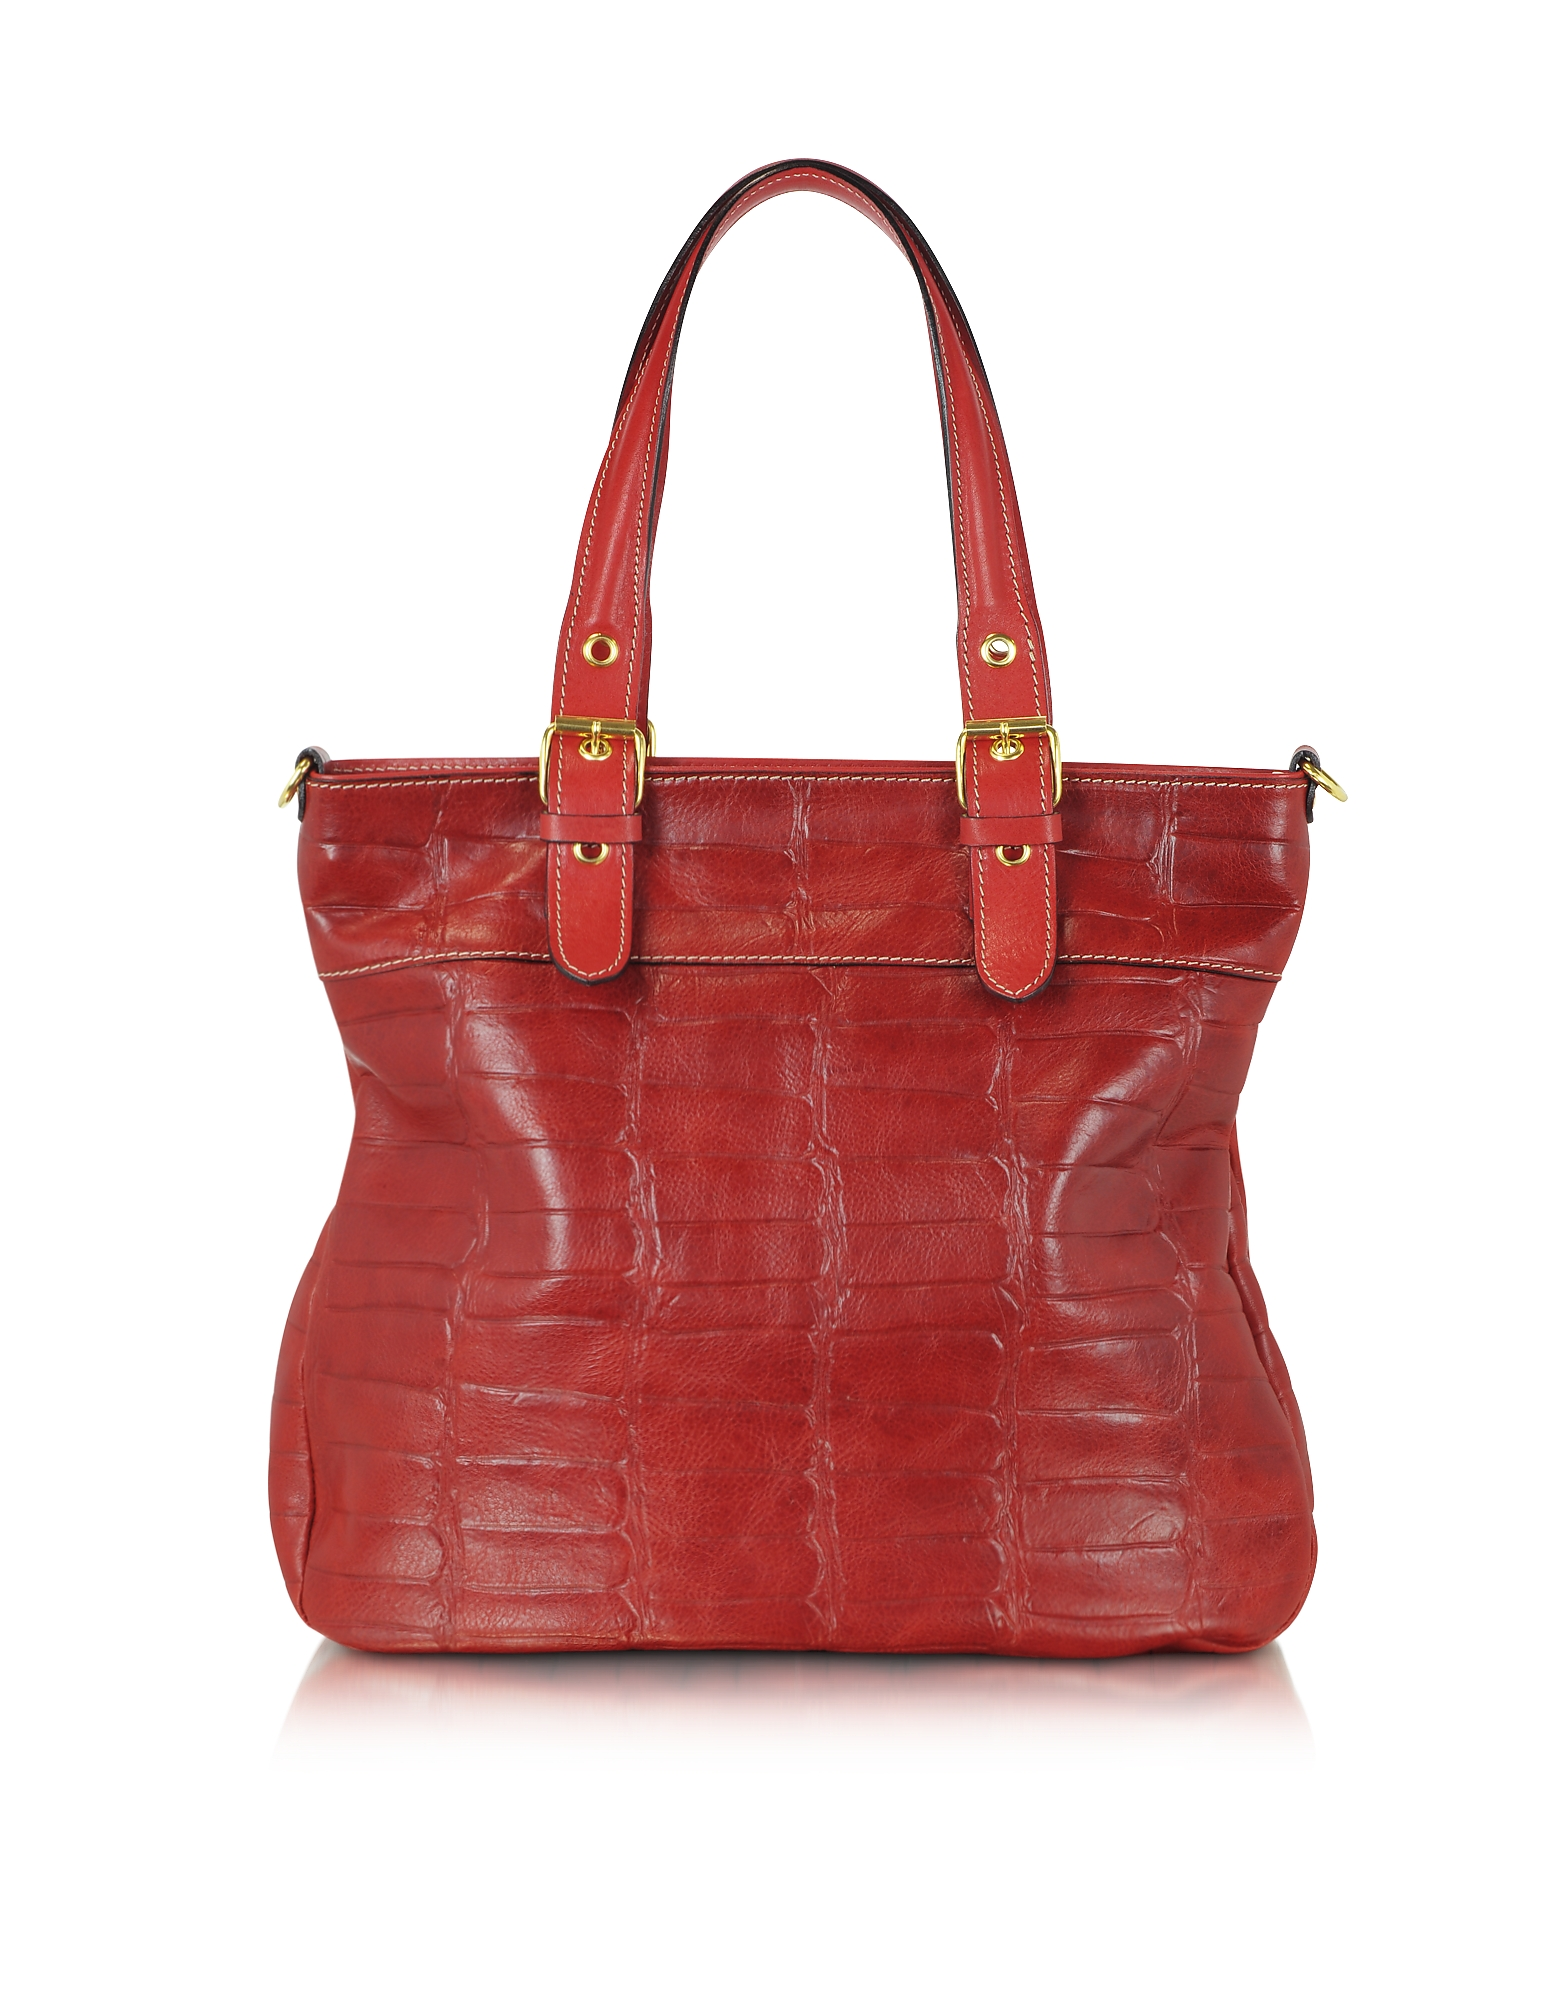 Robe di Firenze Handbags, Red Croco Stamped Italian Leather Tote